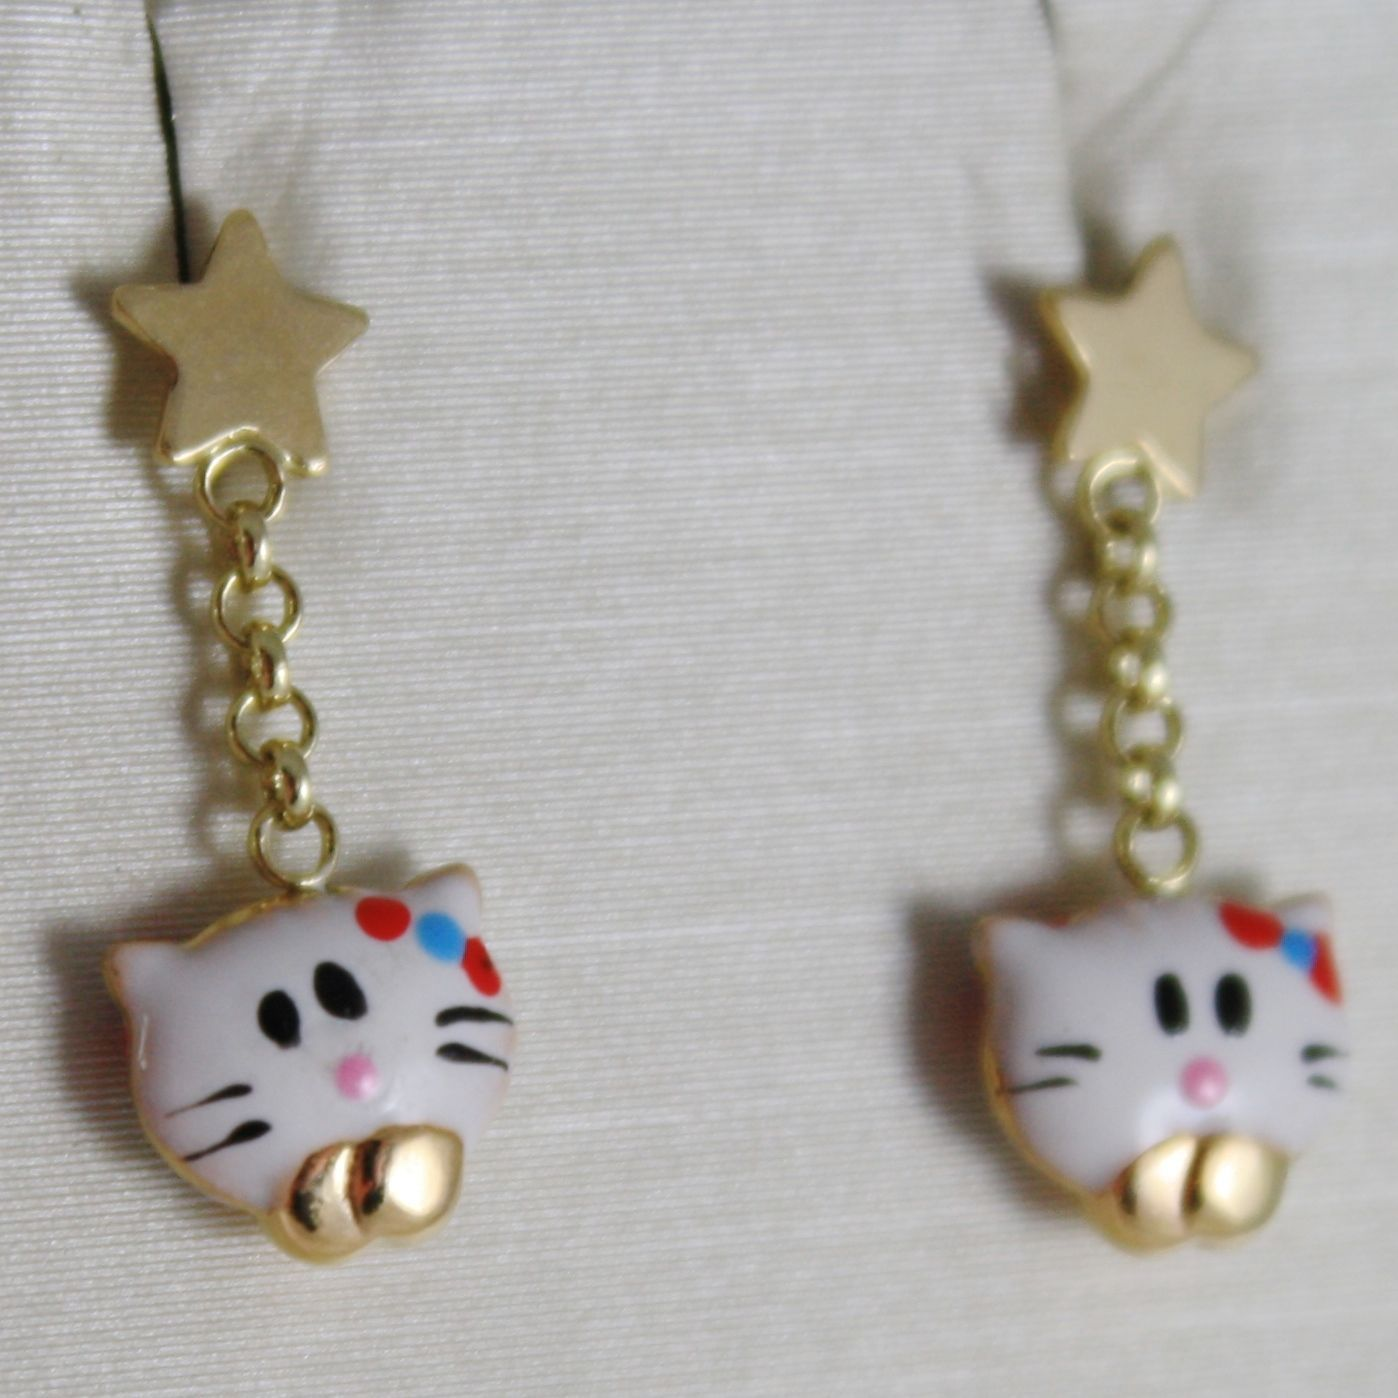 18K YELLOW GOLD PENDANT CHILD KIDS EARRINGS GLAZED CAT CATS STAR MADE IN ITALY